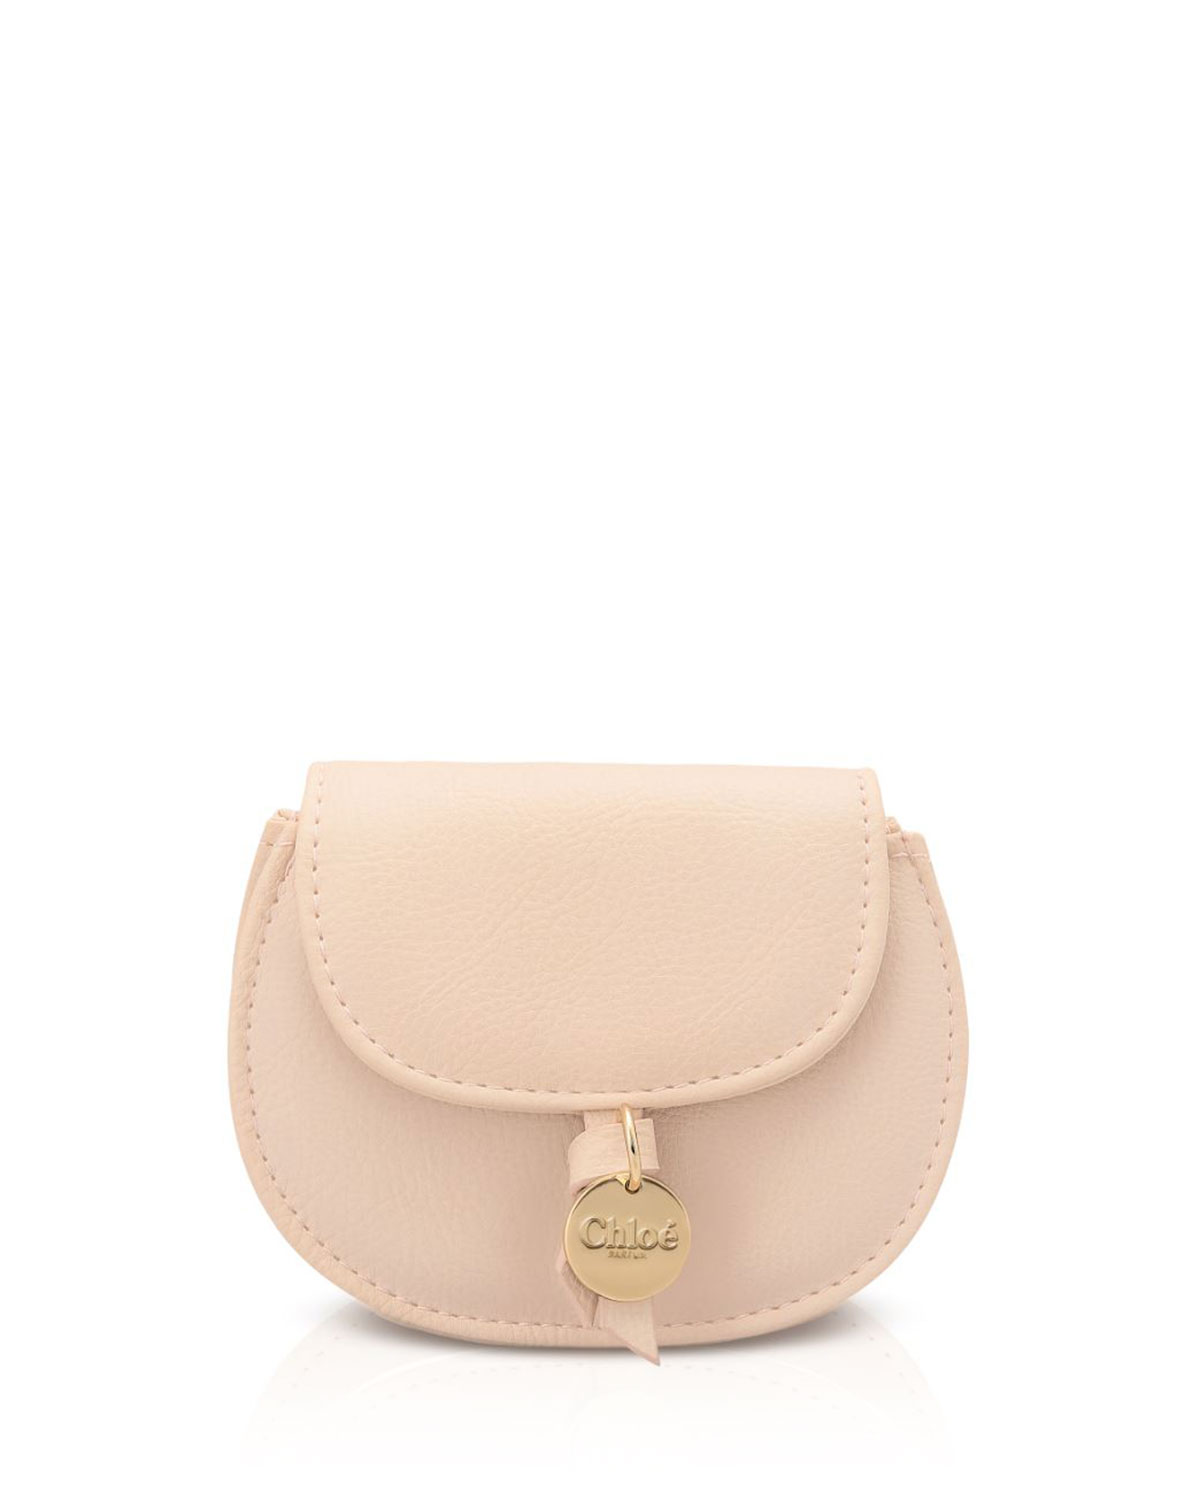 Chloe Yours with any  132 Chloé Fragrance purchase—Online only ... da11049855a6d